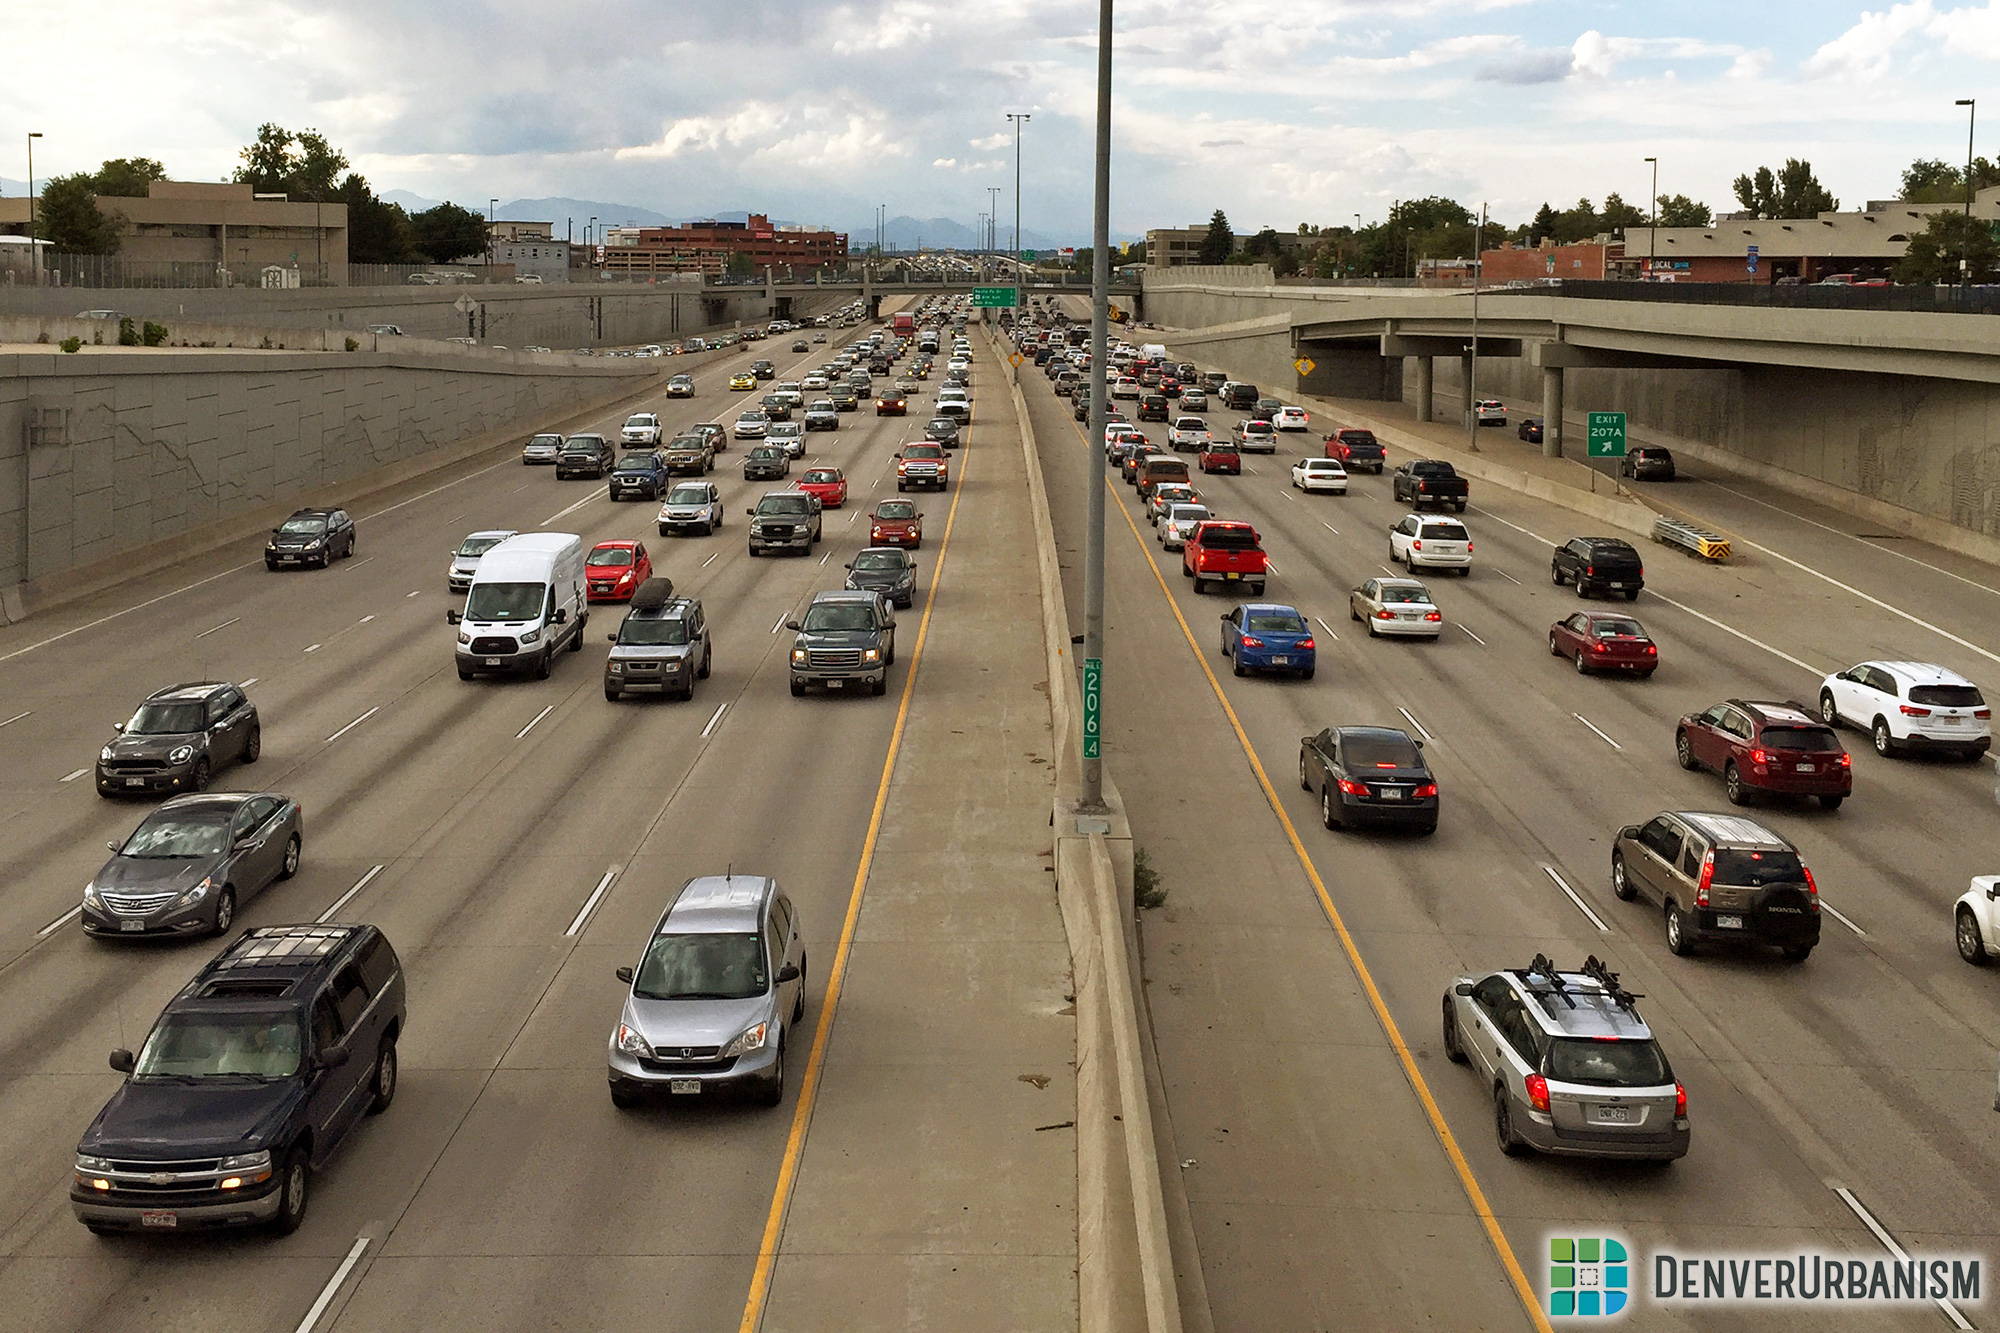 The Problem Isn't Automobiles—It's Subsidizing Automobile Dependency